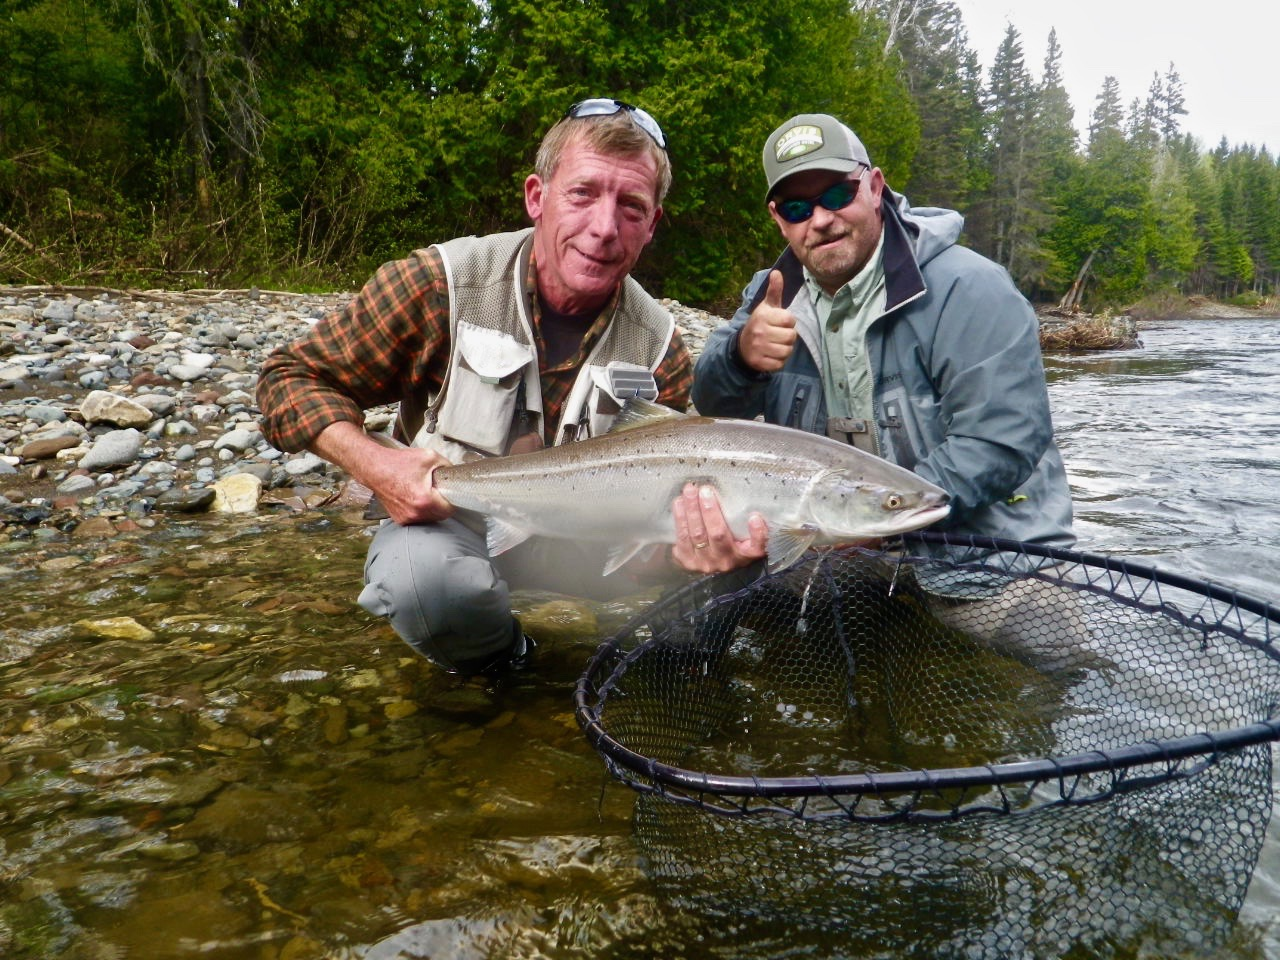 John Frost with Camp Bonaventure guide John Law with the first salmon of the new season, congratulations John! well done.